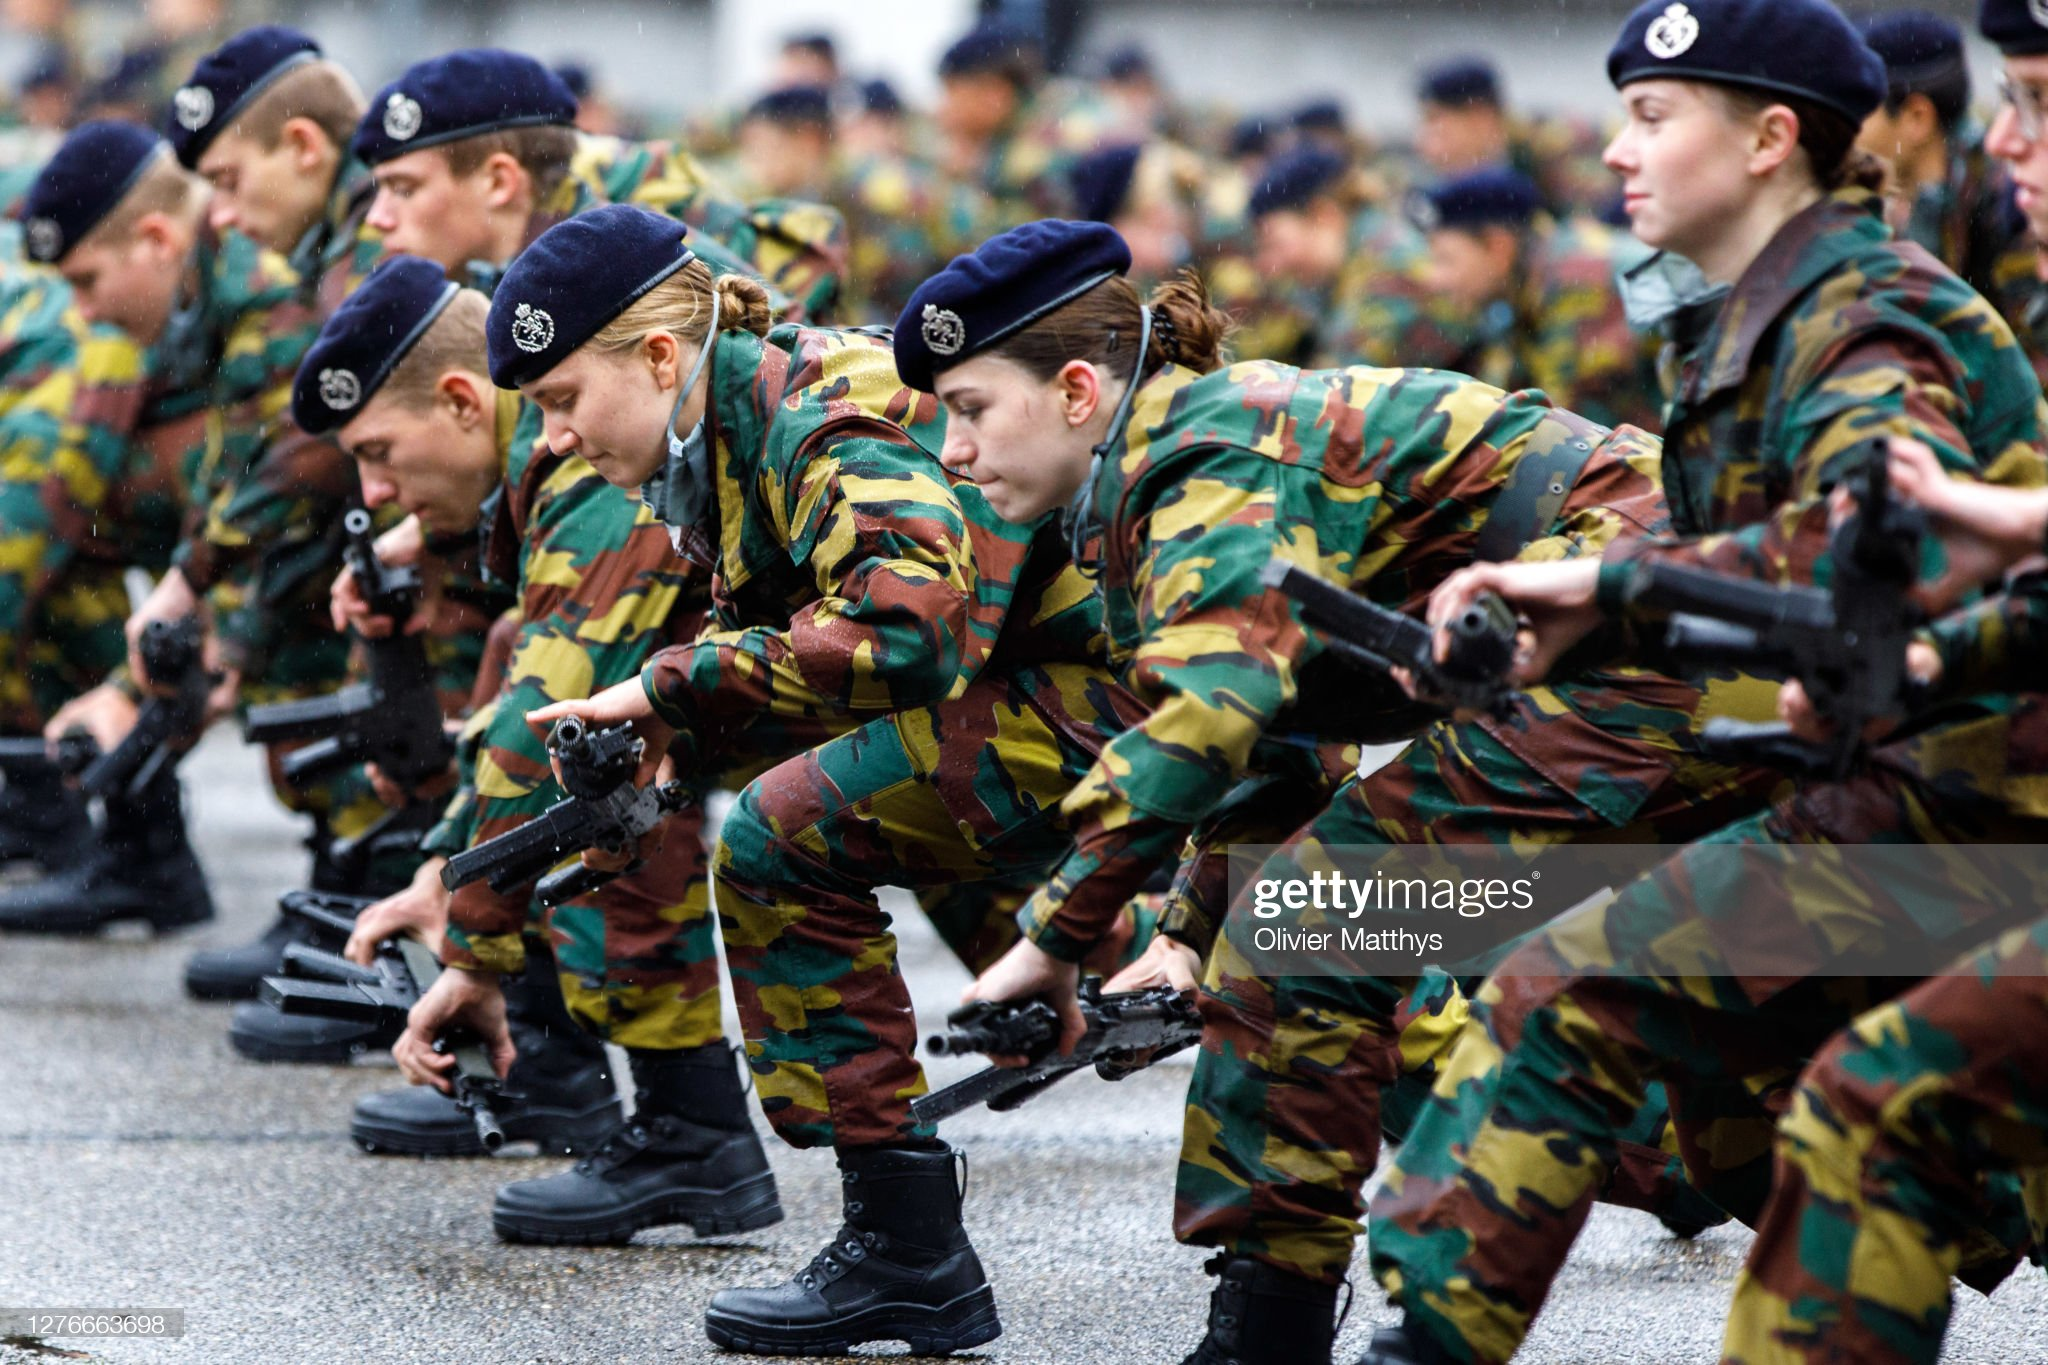 princess-elisabeth-of-belgium-and-her-platoon-salute-and-present-arms-picture-id1276663698